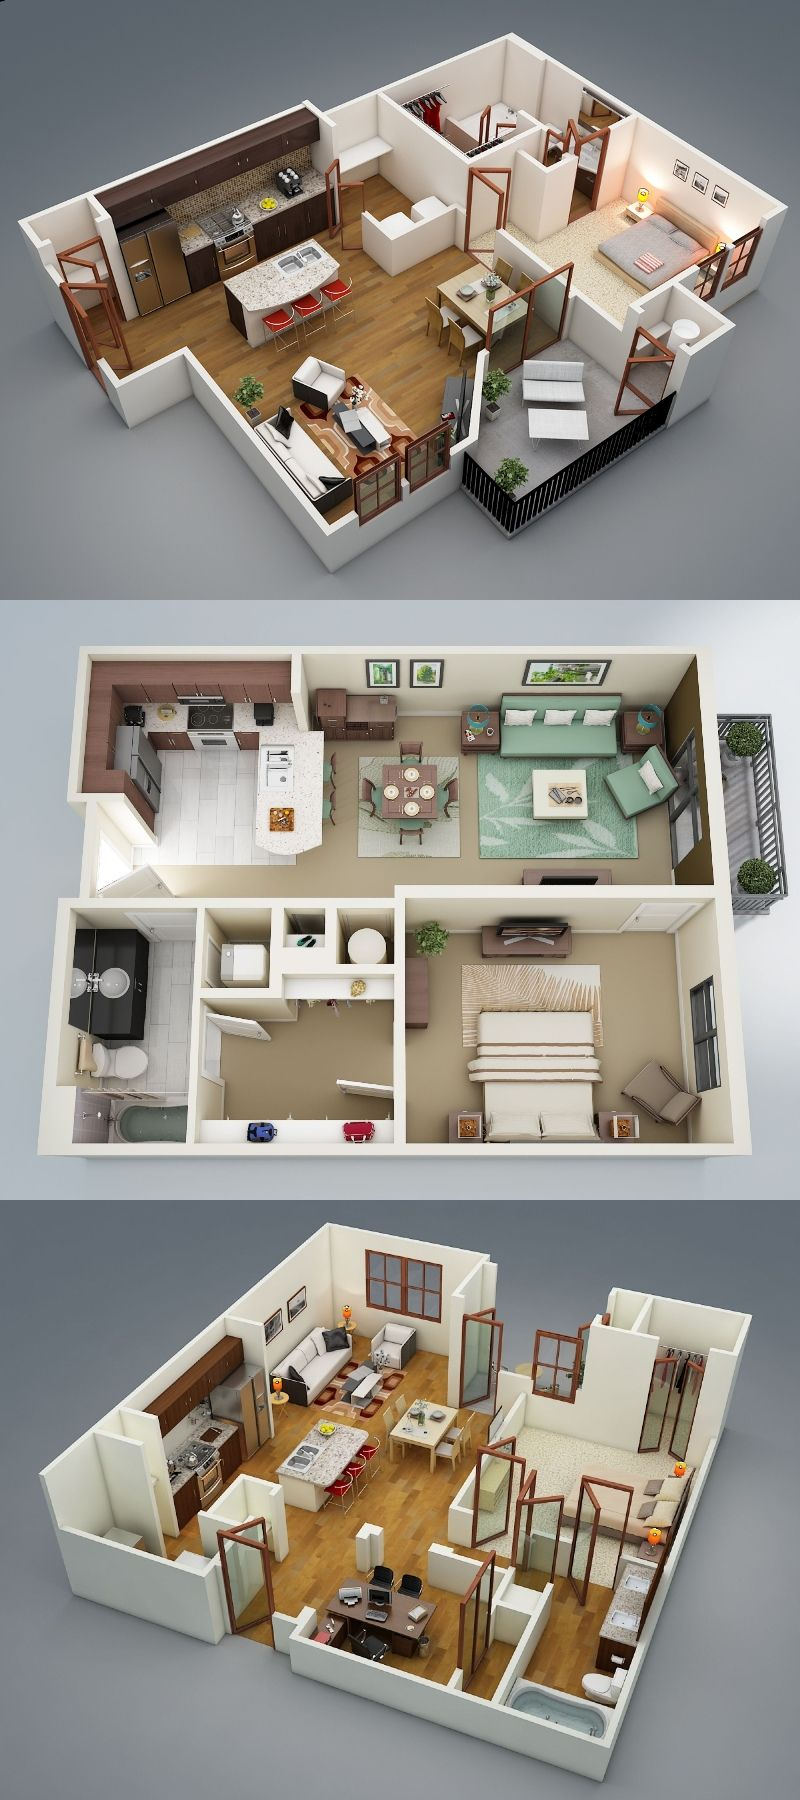 1 bedroom house with loft   Bedroom ApartmentHouse Plans  Bedroom apartment Flats and Bedrooms